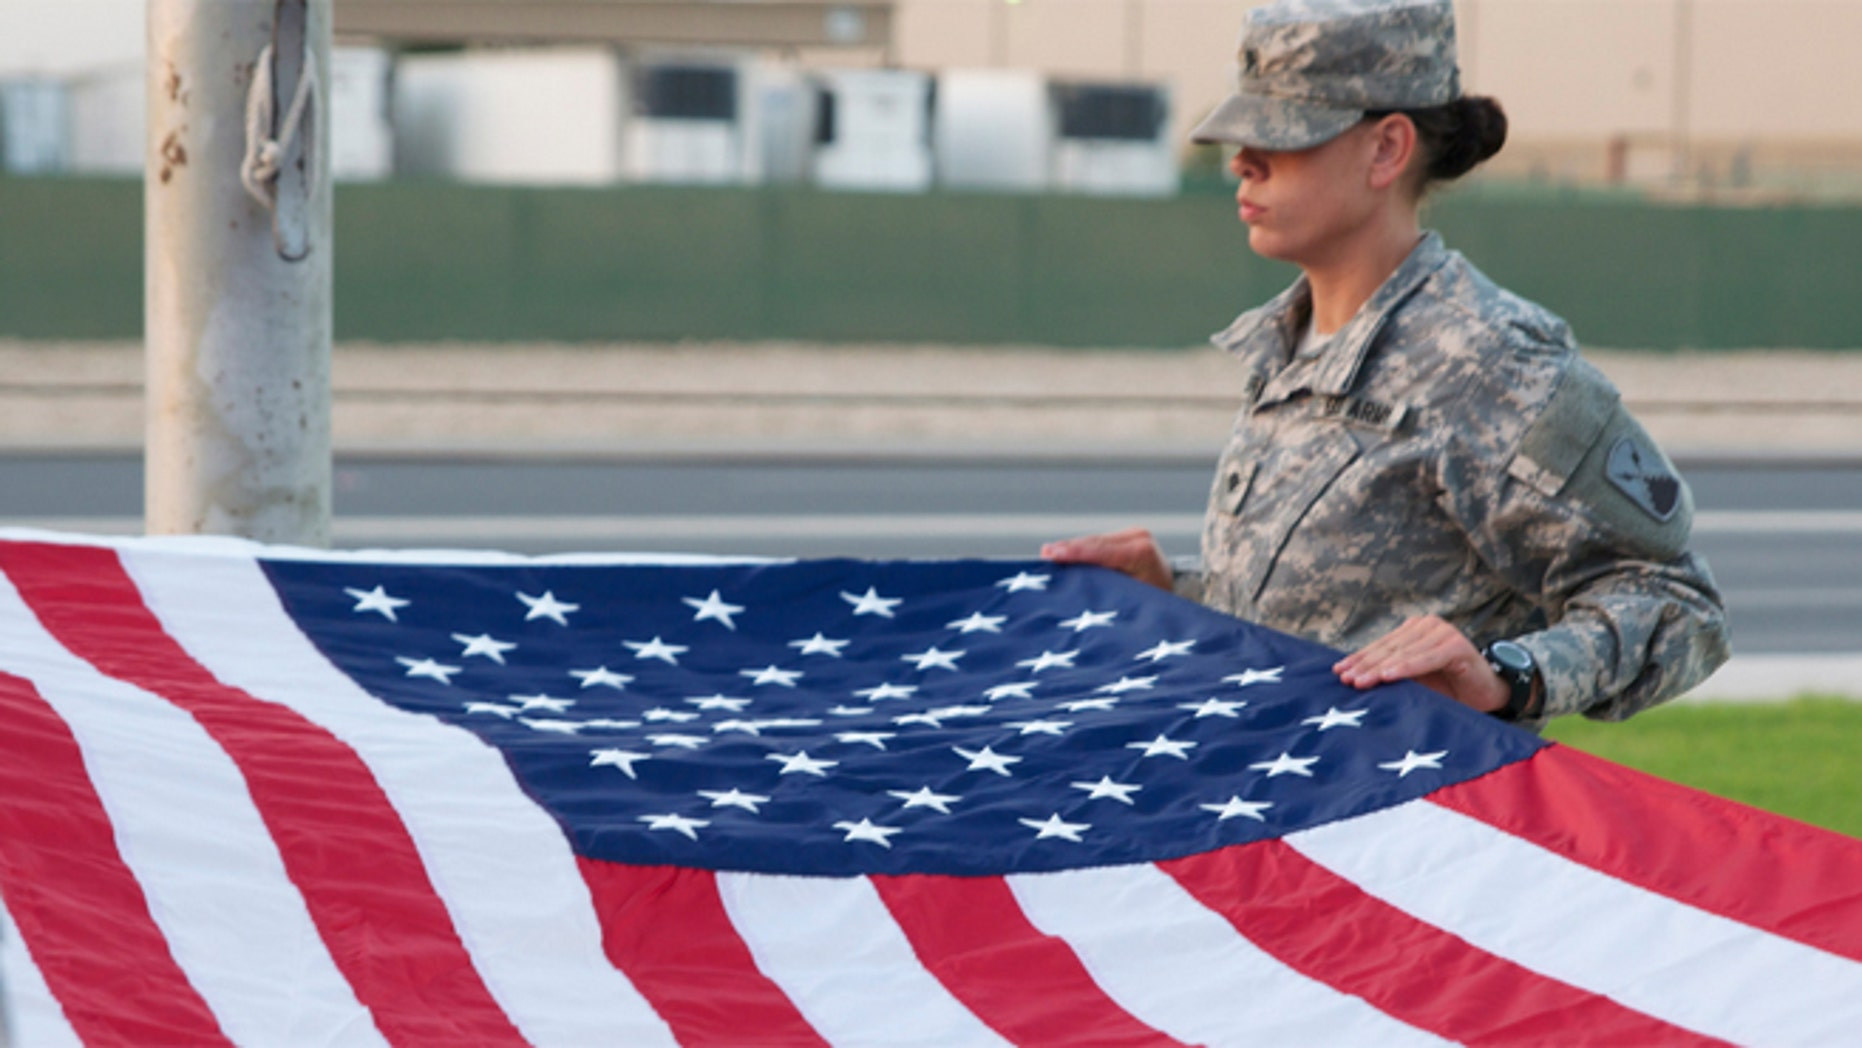 A Soldier on flag detail prepares to fold Old Glory. (U.S. Army/Sgt. John Carkeet IV)